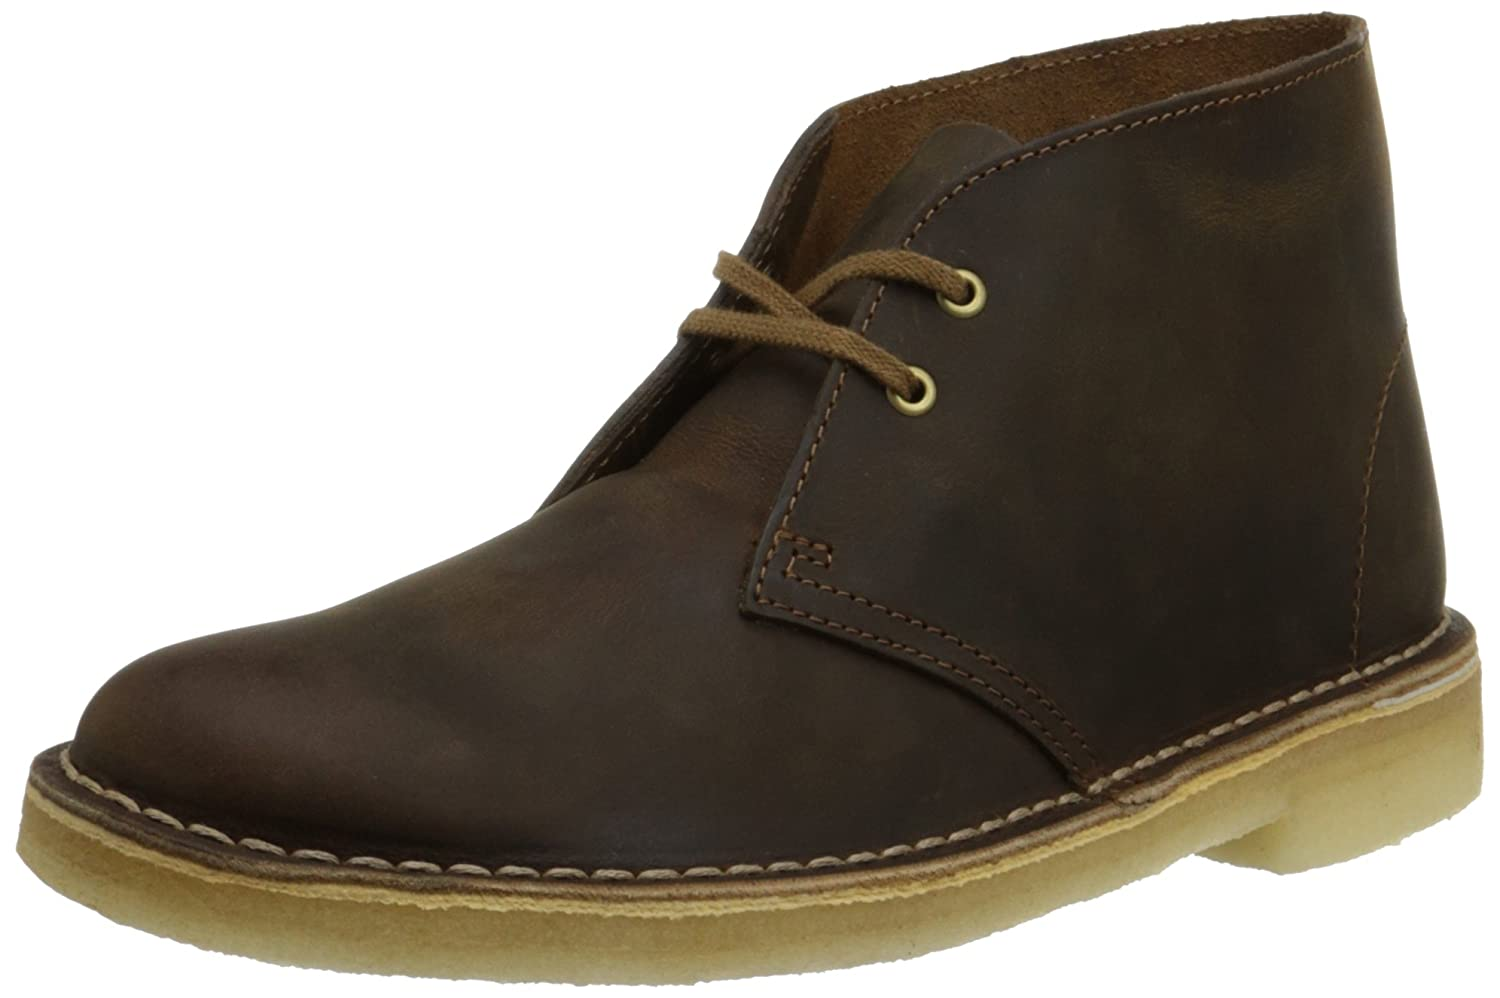 CLARKS Women's Desert Boot Ankle Bootie B00UCVQ3OO 6.5 B(M) US|Beeswax Leather